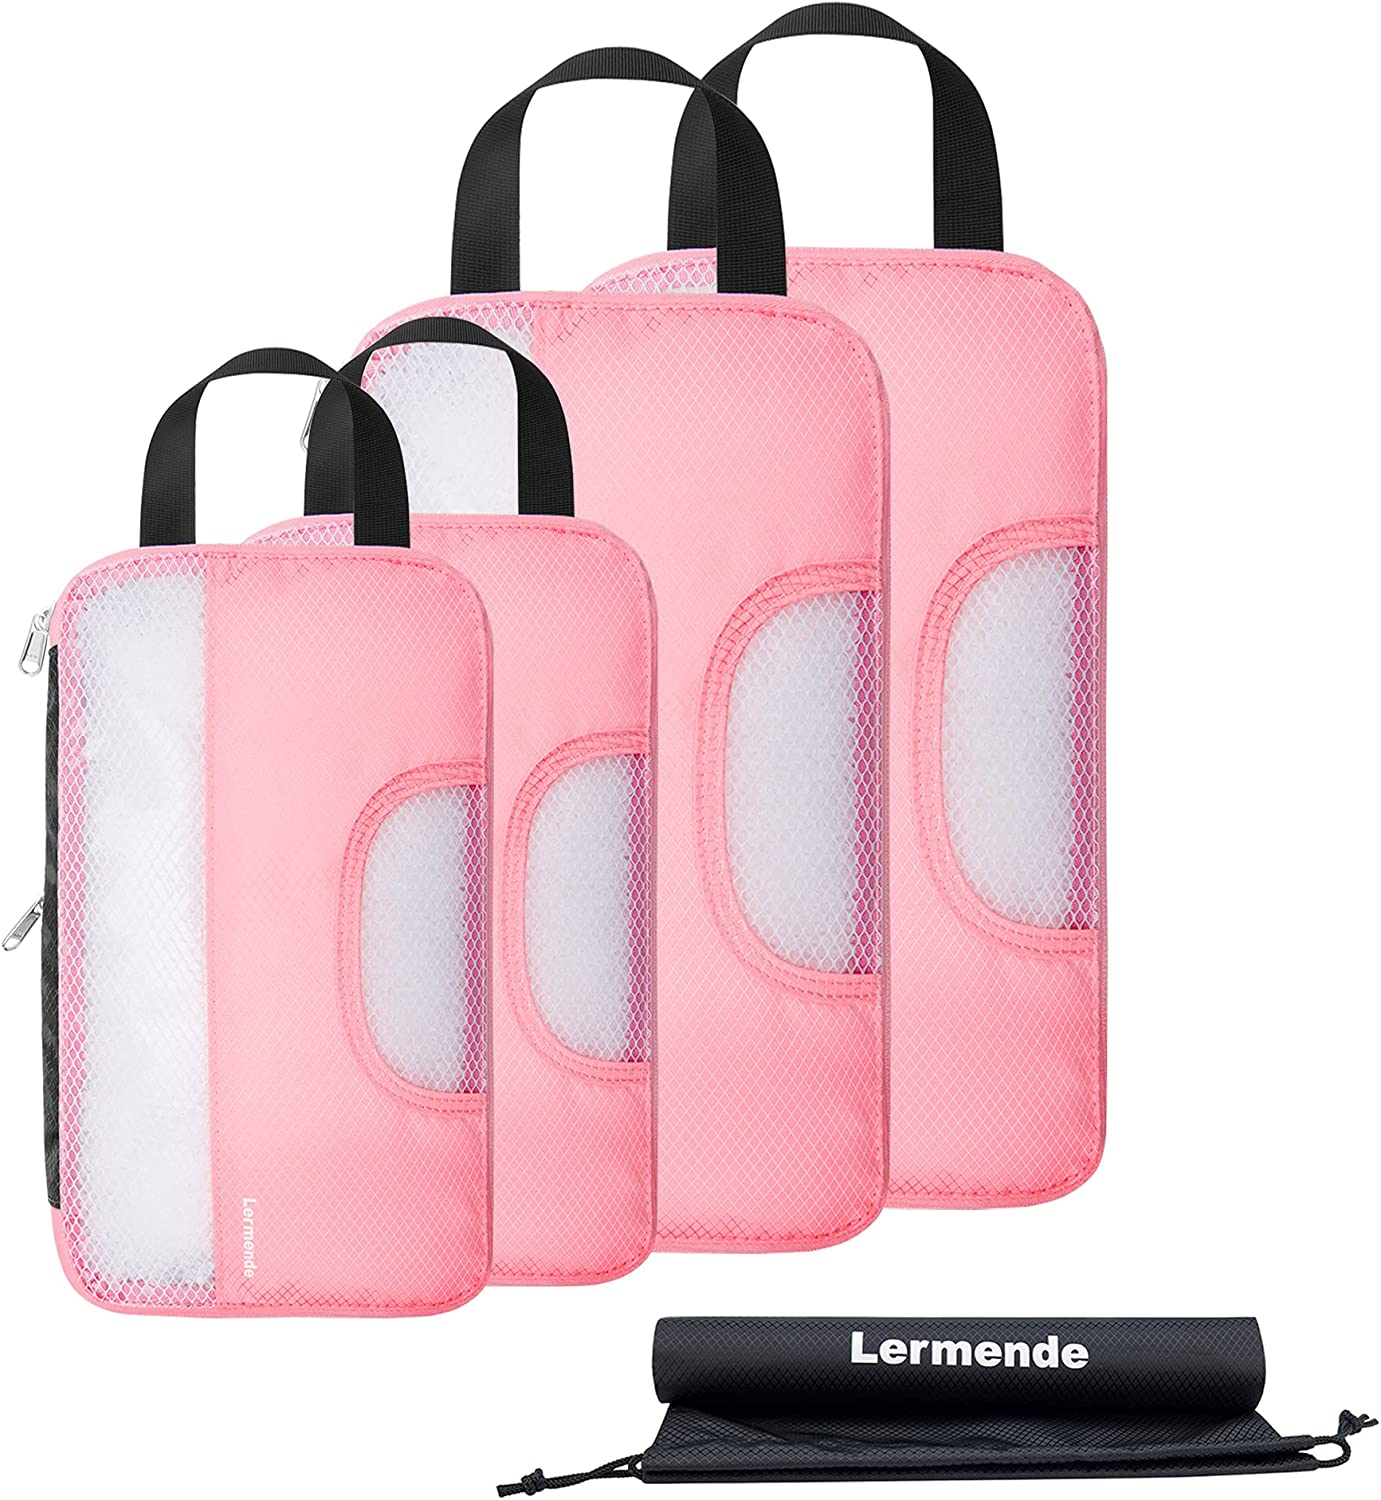 Miami Attention brand Mall Lermende Travel Compression Packing Var Extensible Cubes Storage